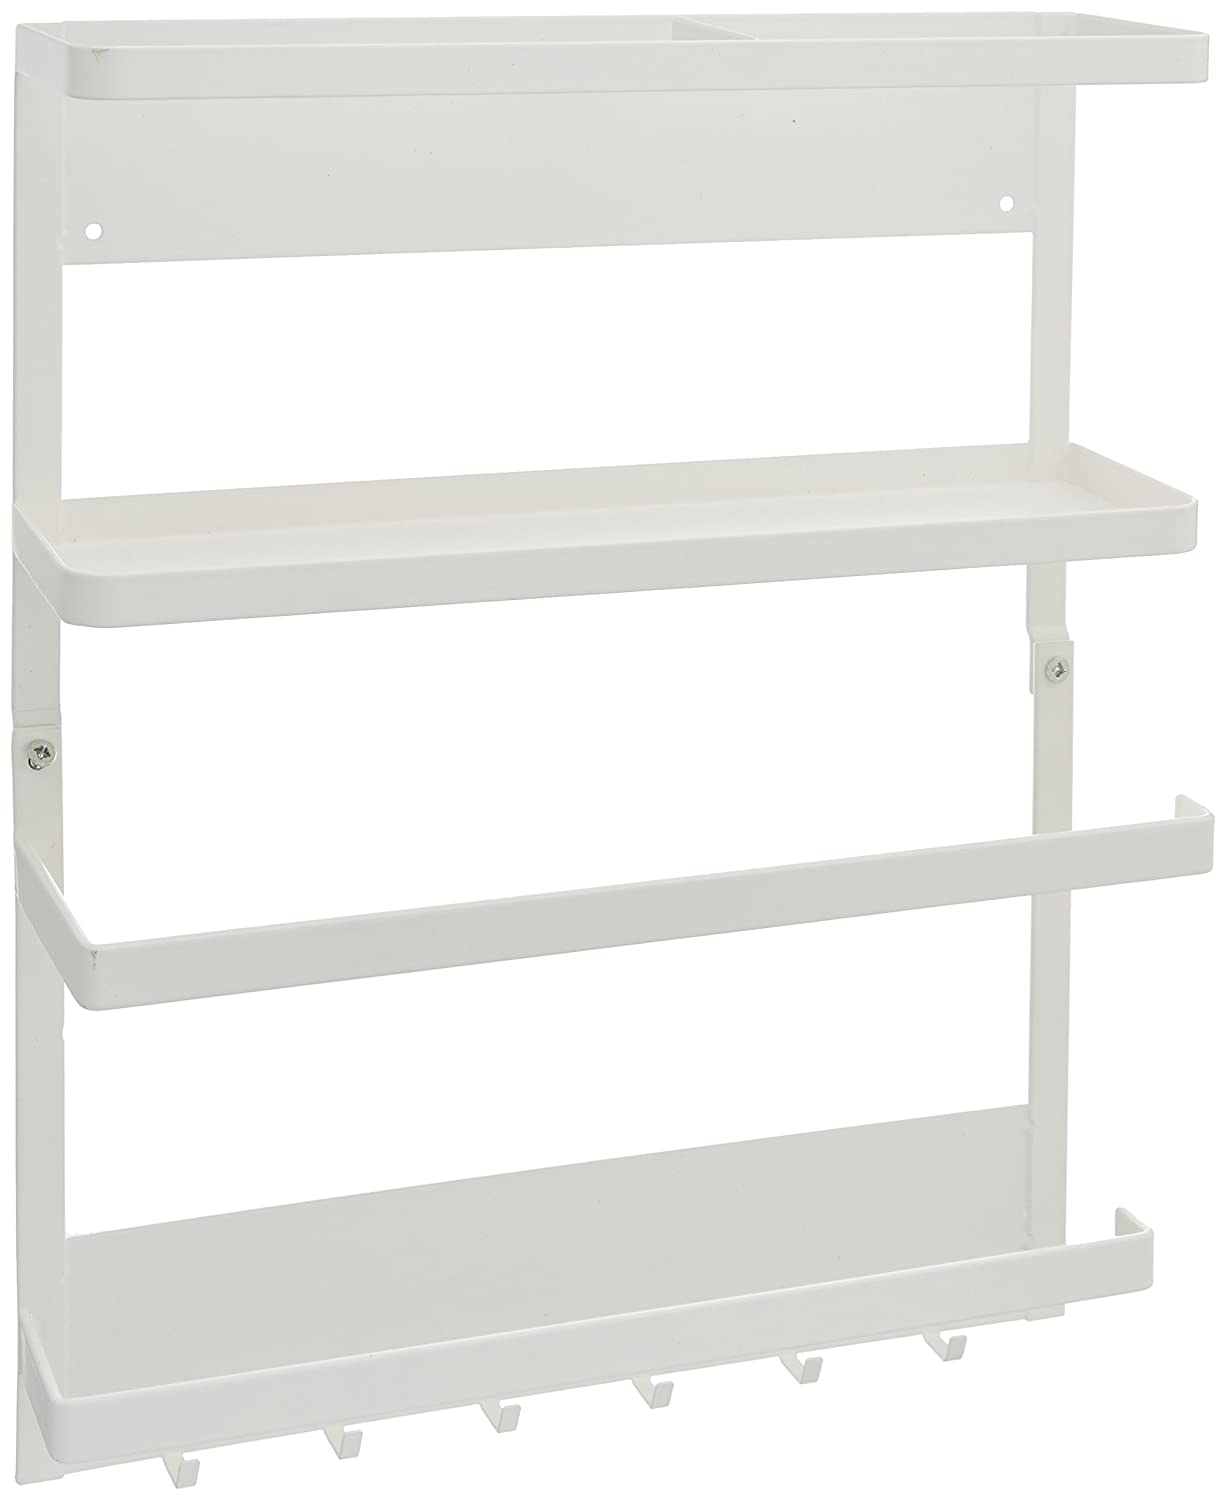 YAMAZAKI home Plate Magnetic Kitchen Organization Rack, White